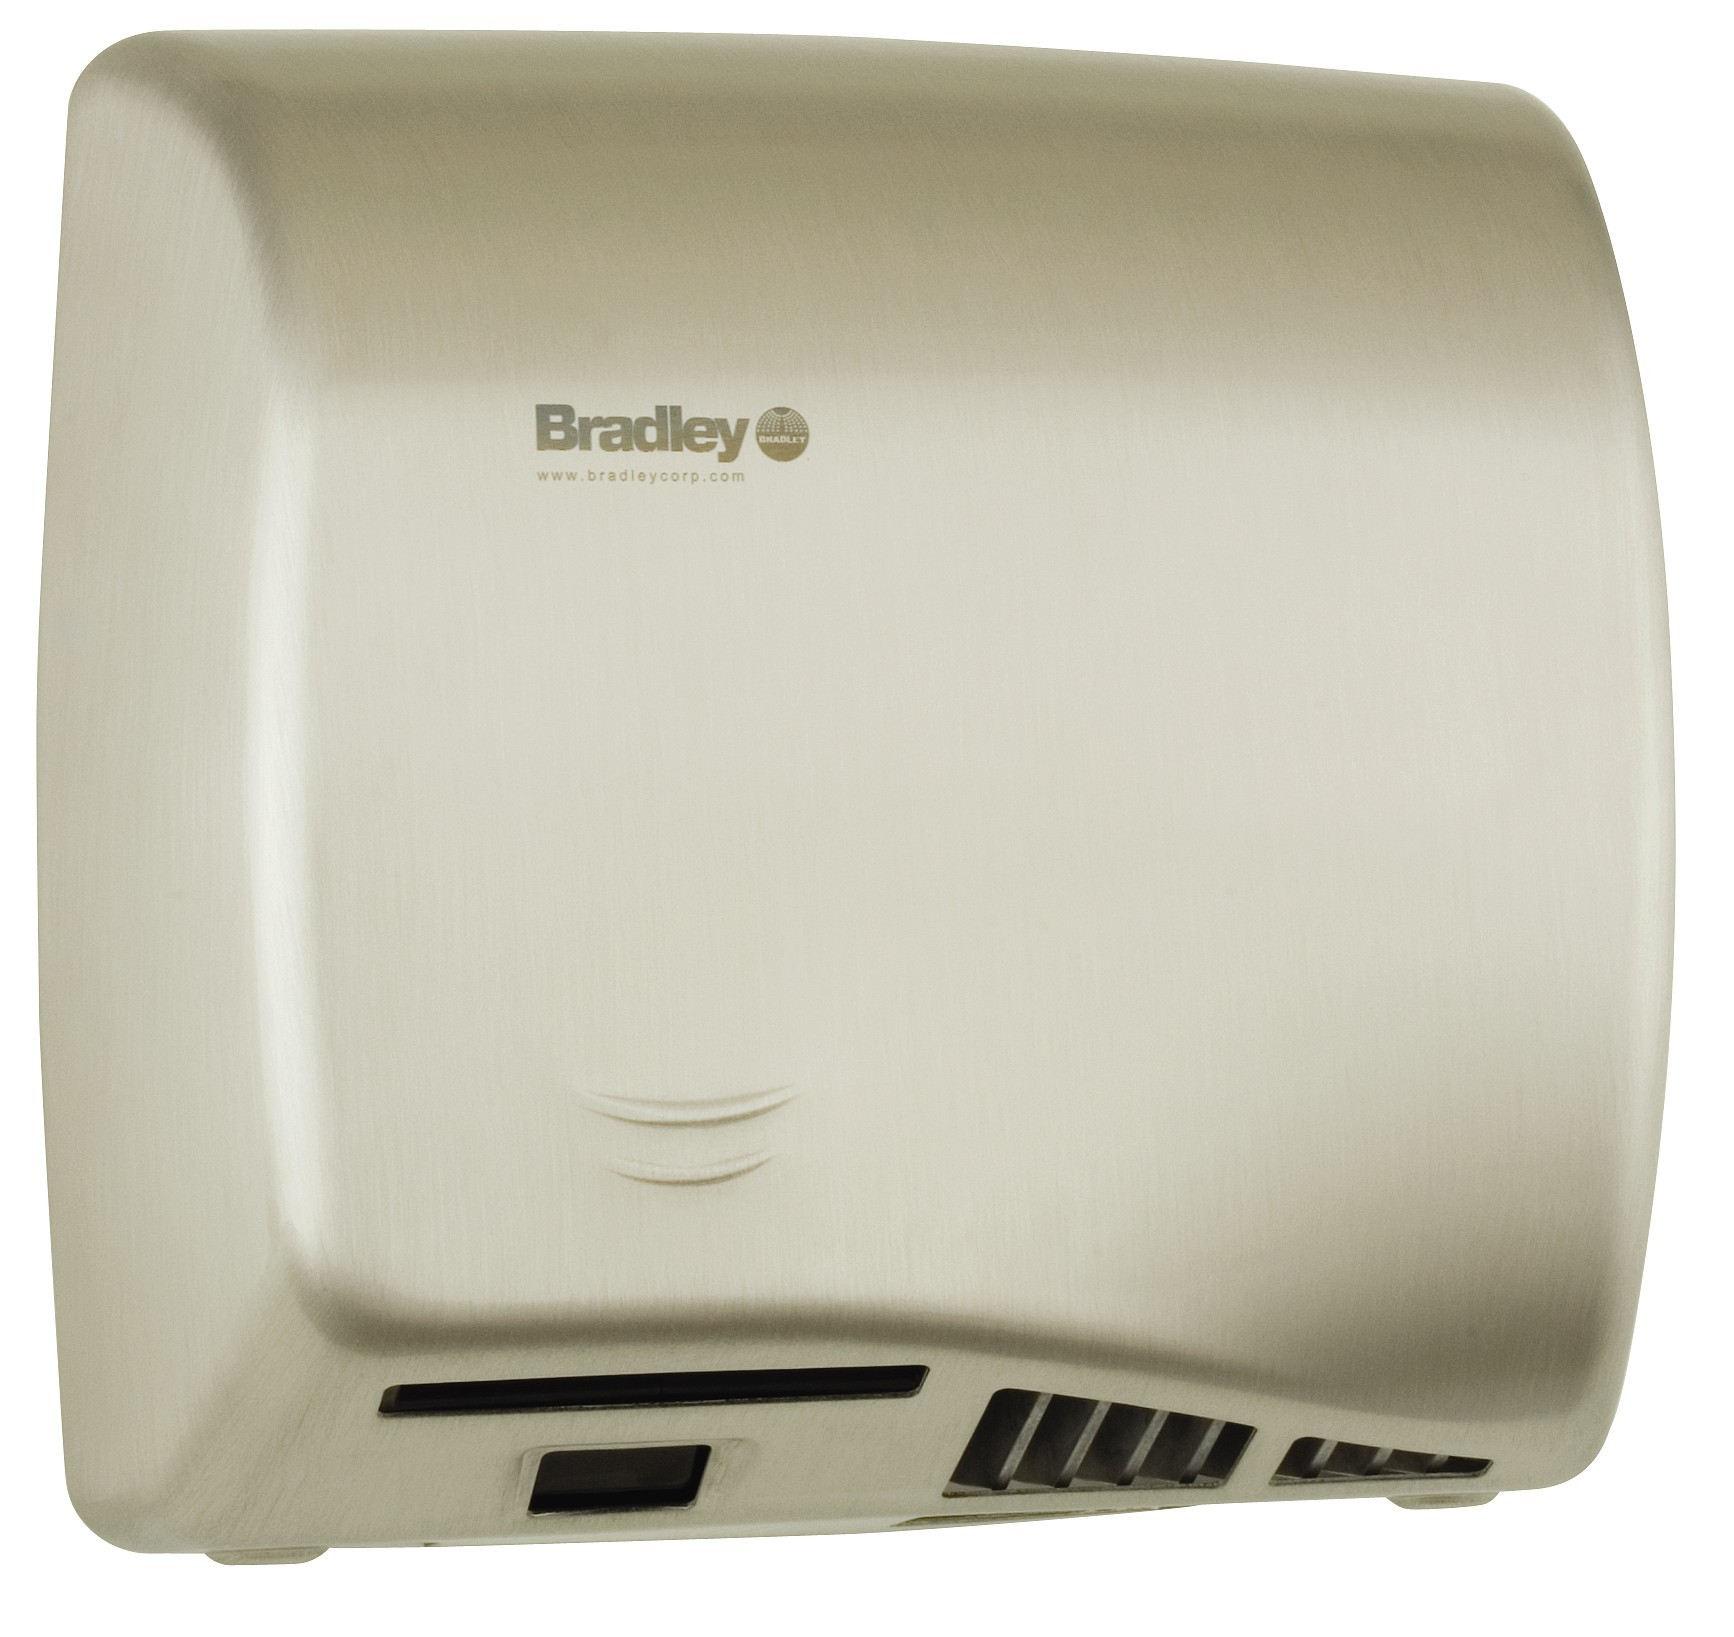 BRADLEY 2902-287400: BX, AERIX HAND DRYER, SURFACE MOUNT, SENSOR-OPERATED (ADJUSTABLE 2inch-8inch), 120-VOLT, 1-PHASE, 9.5-AMPS, 60-HZ, WARM AIR, SATIN STAINESS STEEL, ADA, WITH INTEGRAL NOZZLE, (10-15 SECOND DRYING TIME)